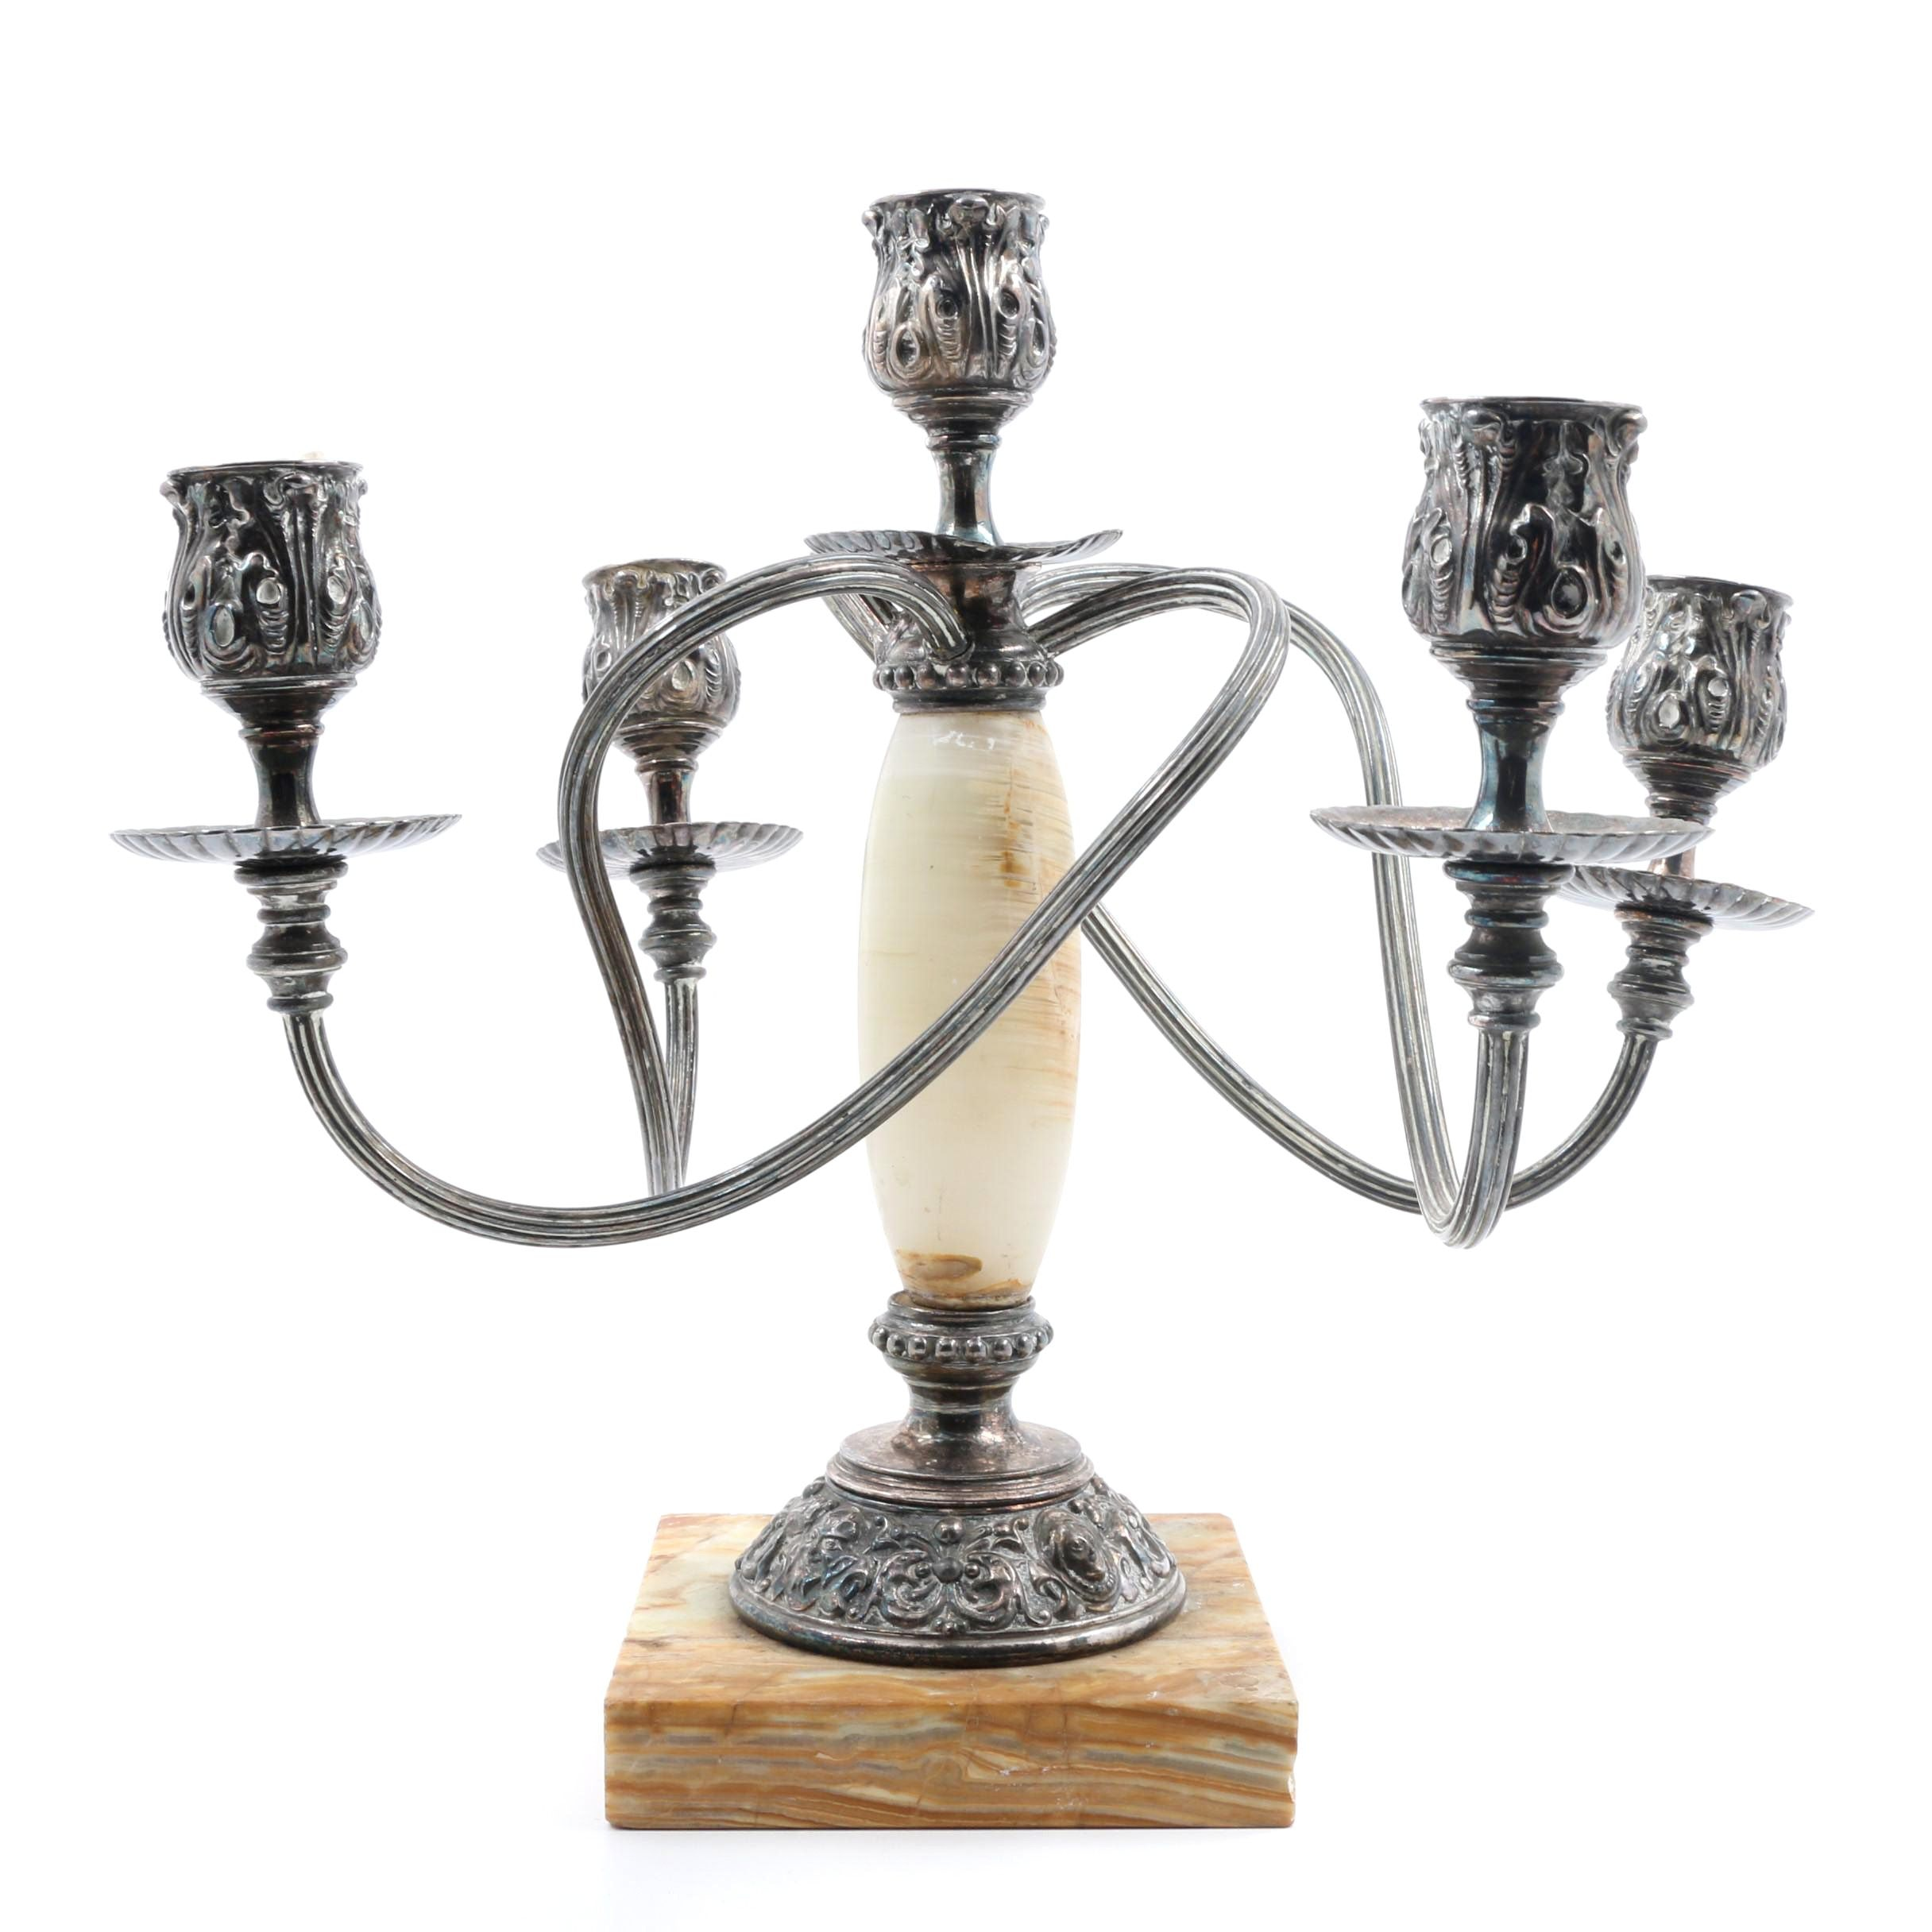 James W. Tufts Antique Quadruple Plated Silver and Marble Candle Stick Holder